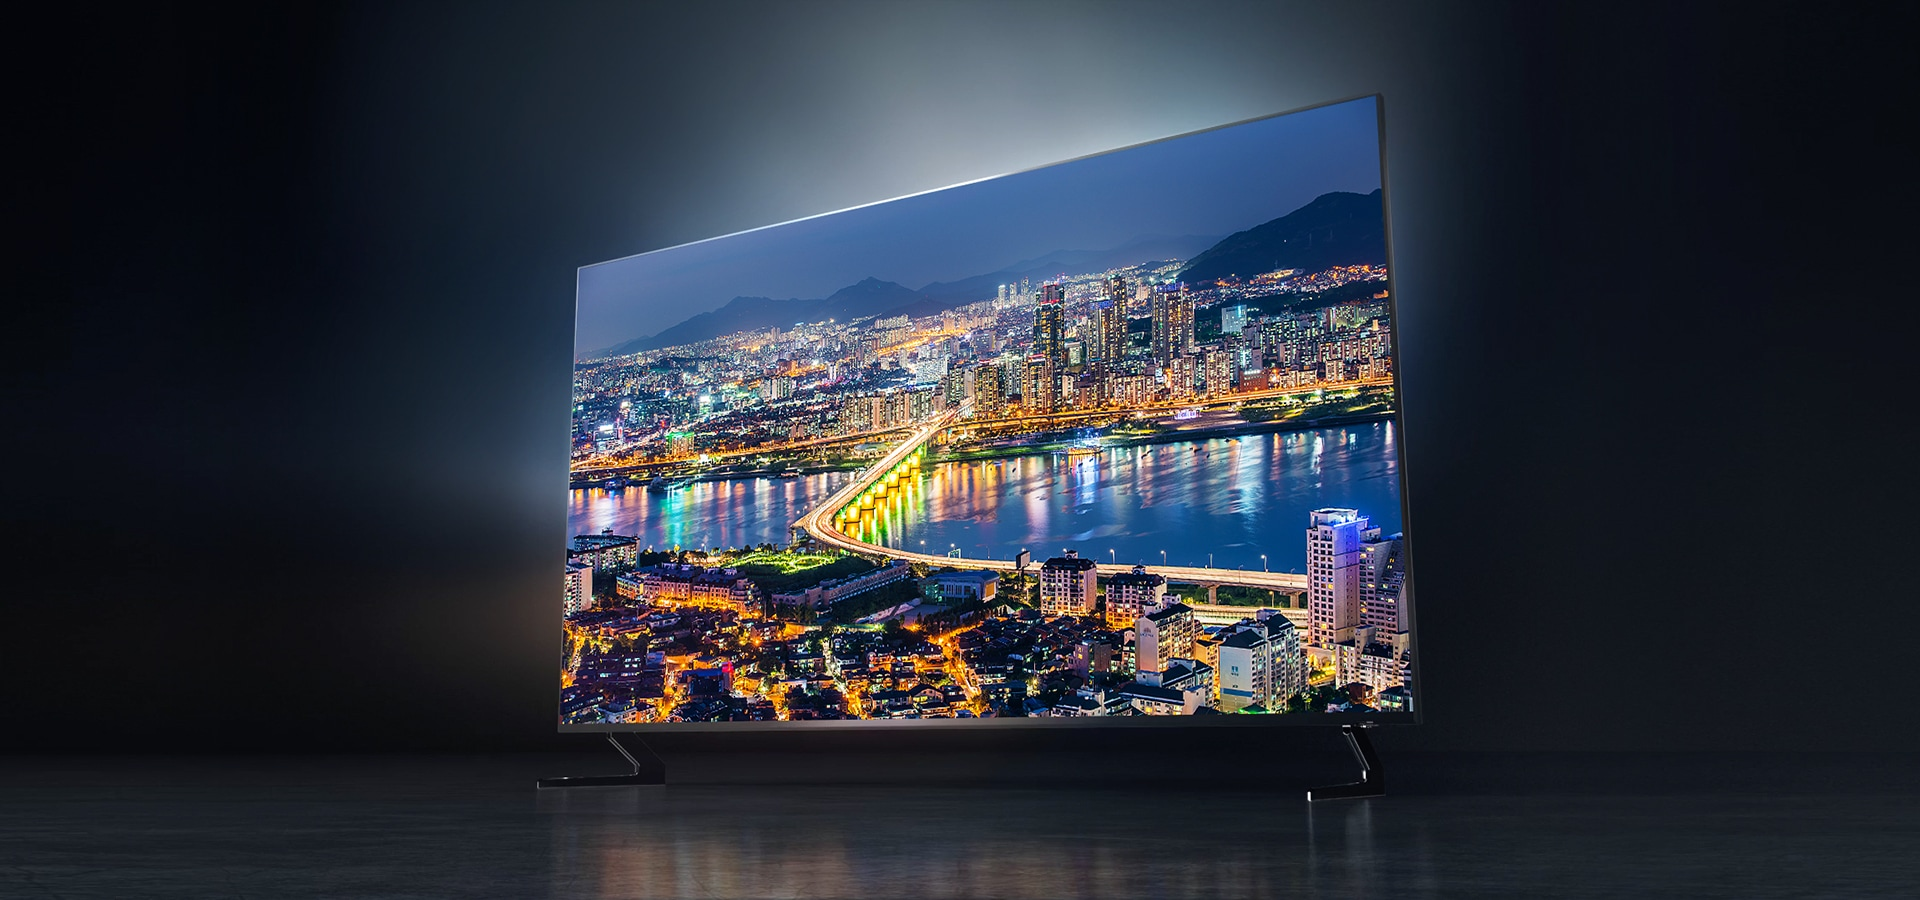 Right Perspective view of Samsung's latest TV, the 2019 new Samsung QLED Q900R with a clear city view onscreen on TV.